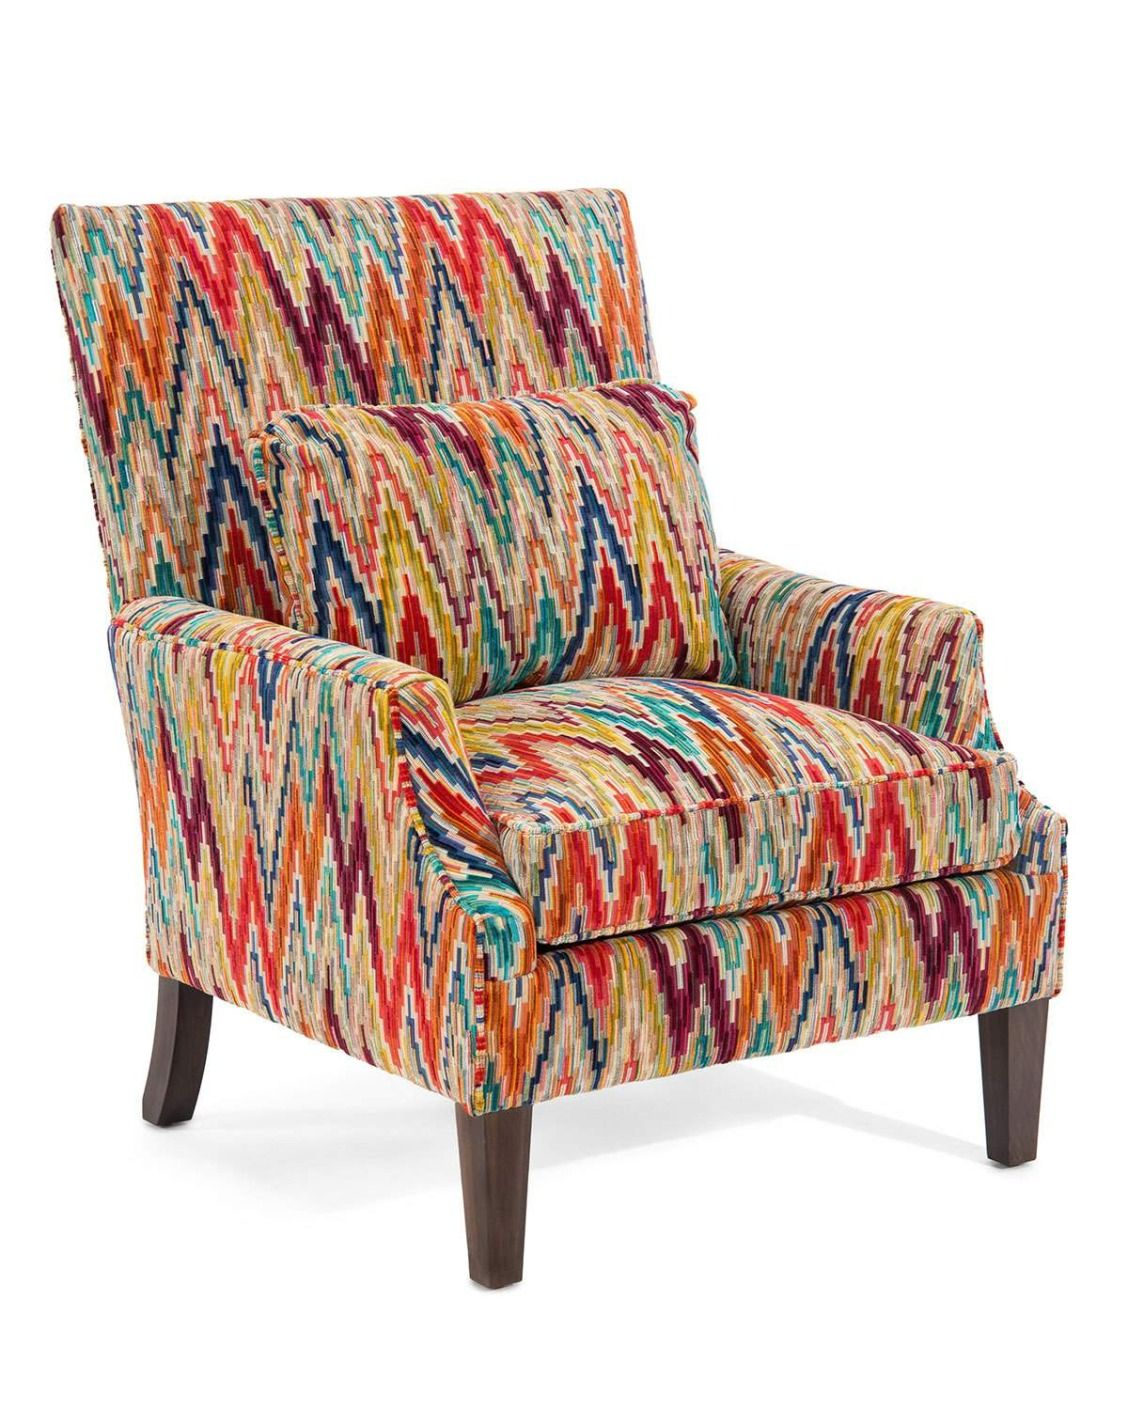 John Richard Collection Cameron Club Chair Club Chairs Colorful